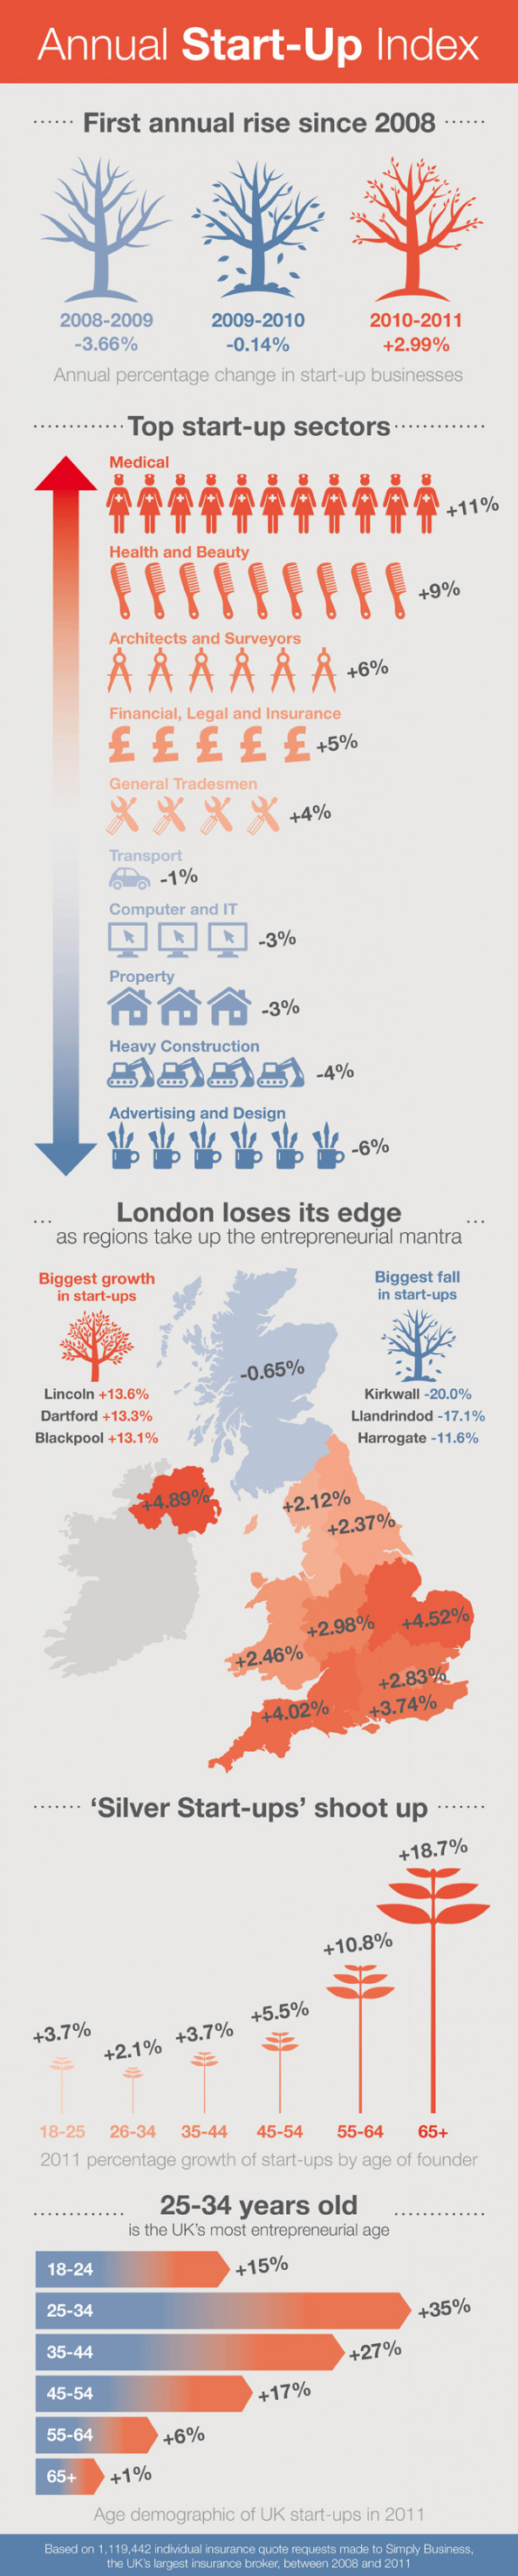 UK Start-Up Index Infographic